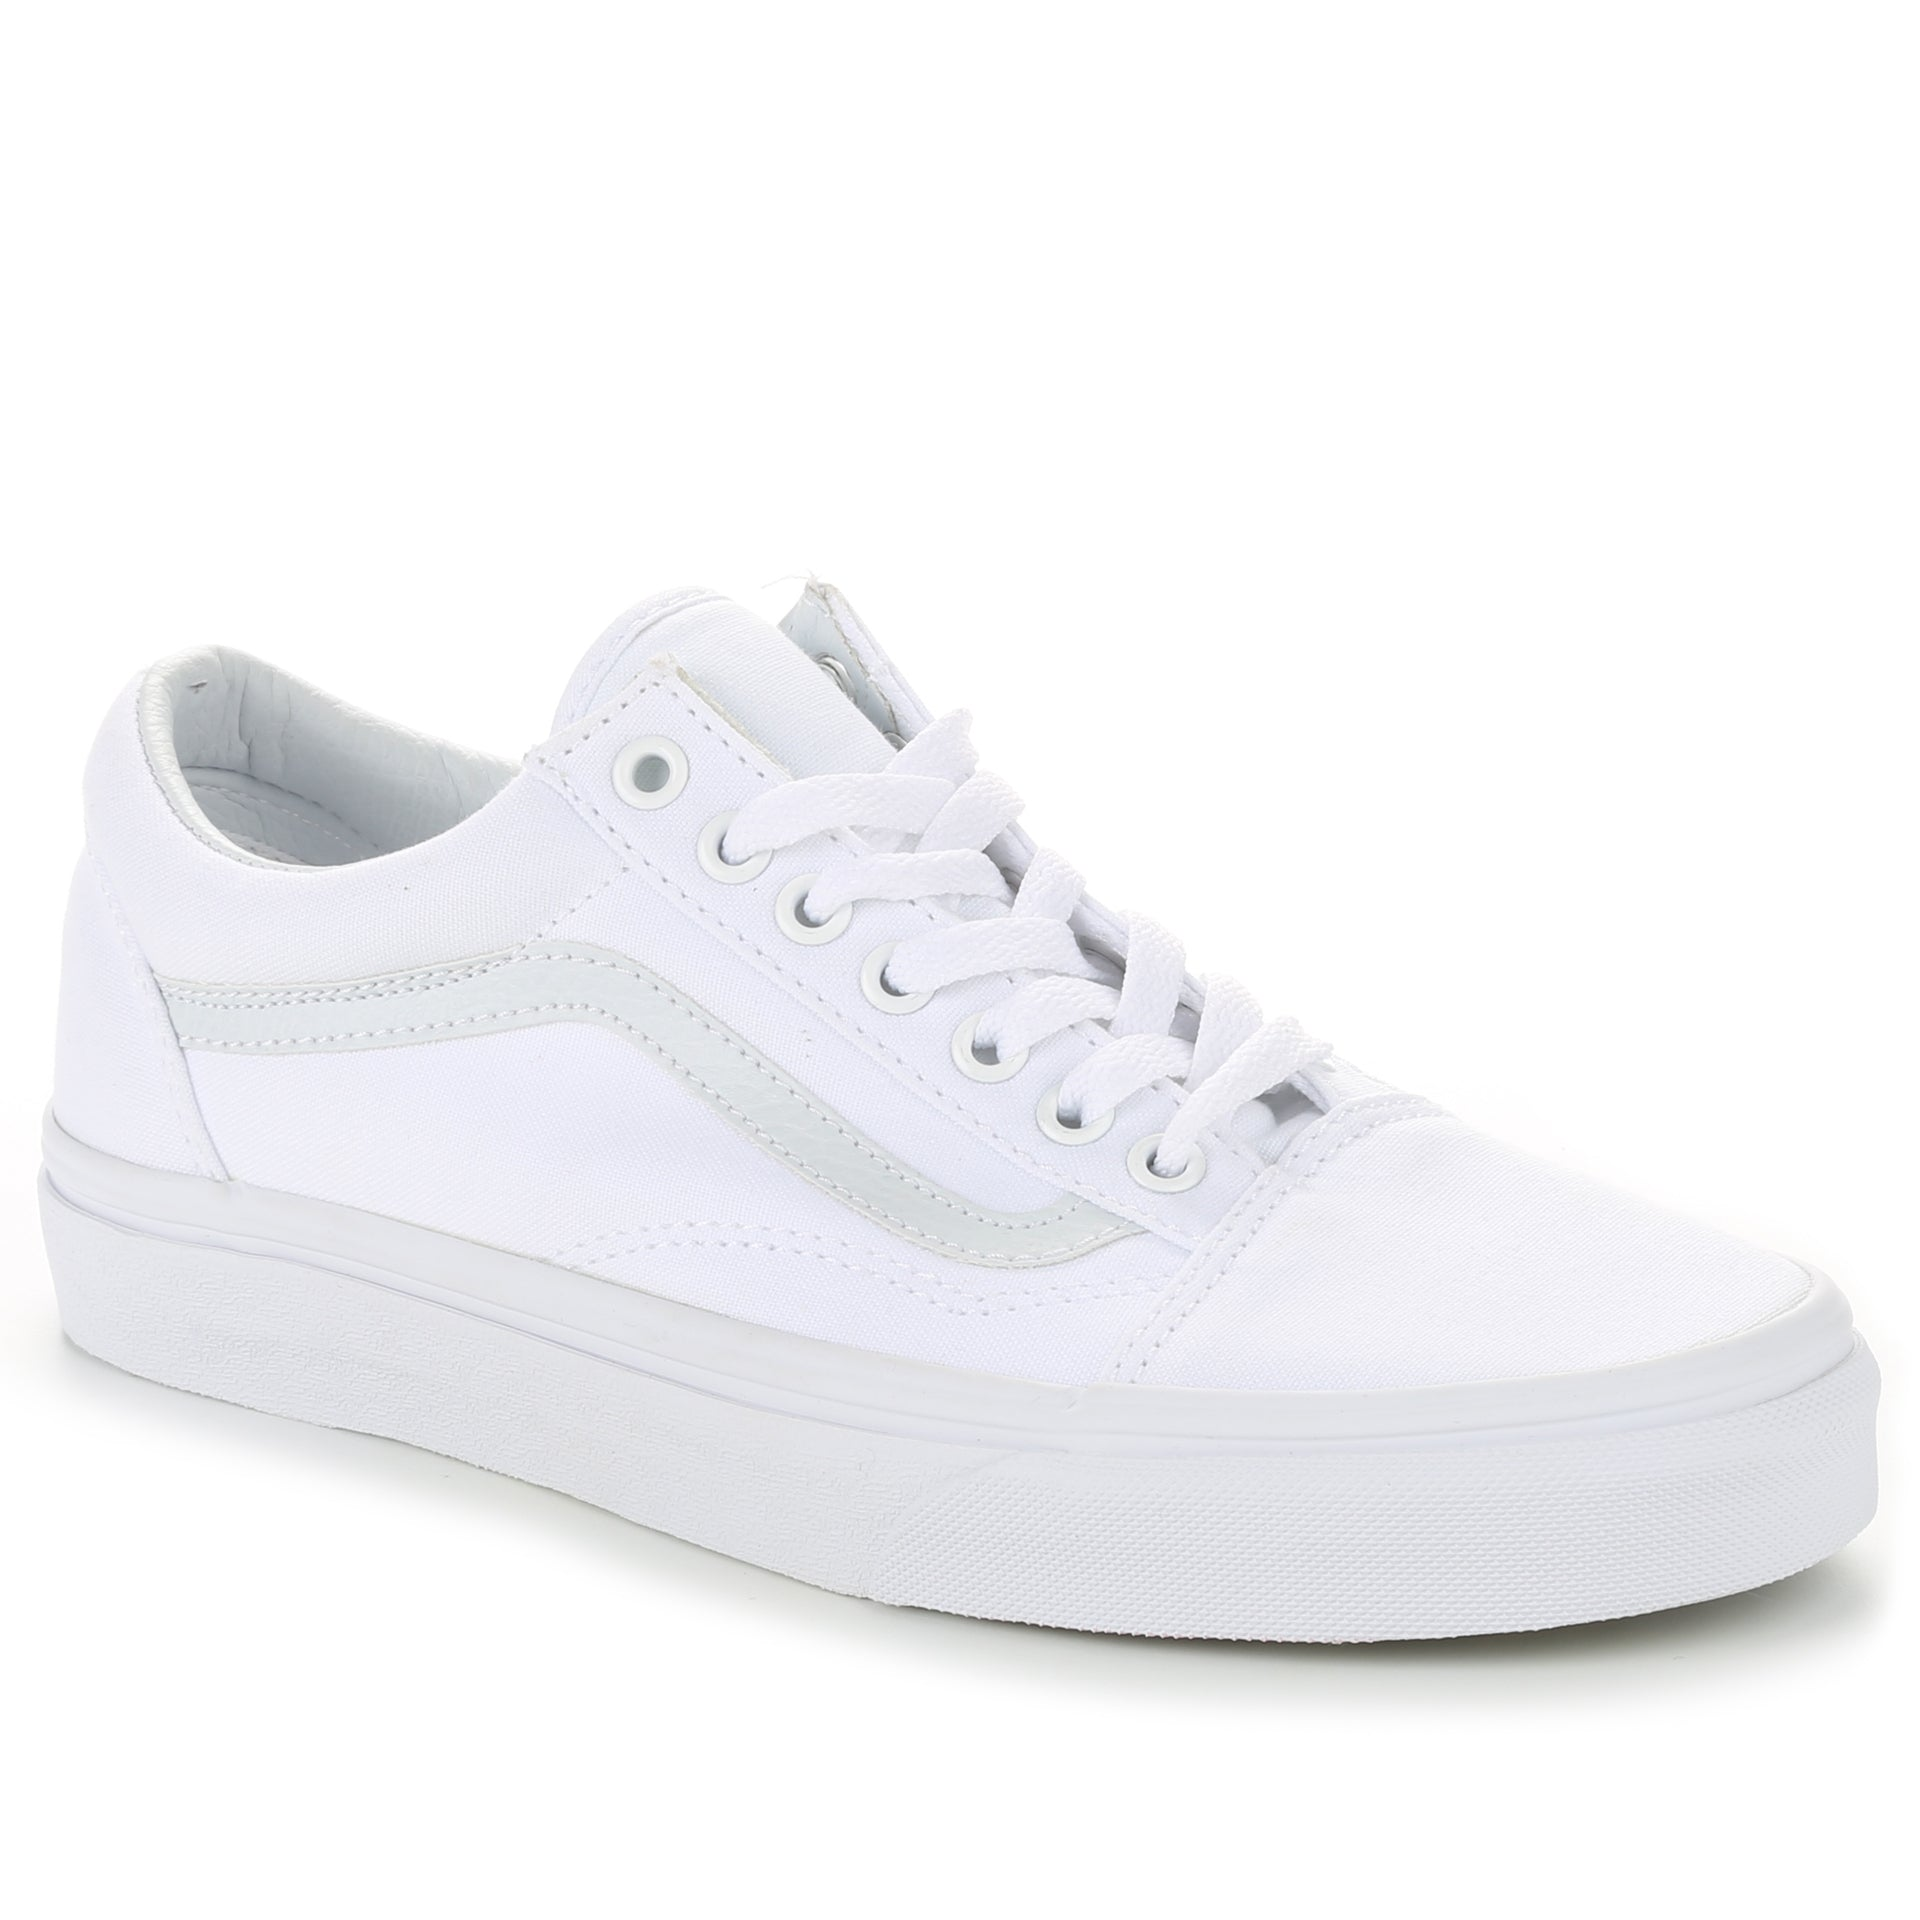 Vans Canvas Old Skool True White New Star